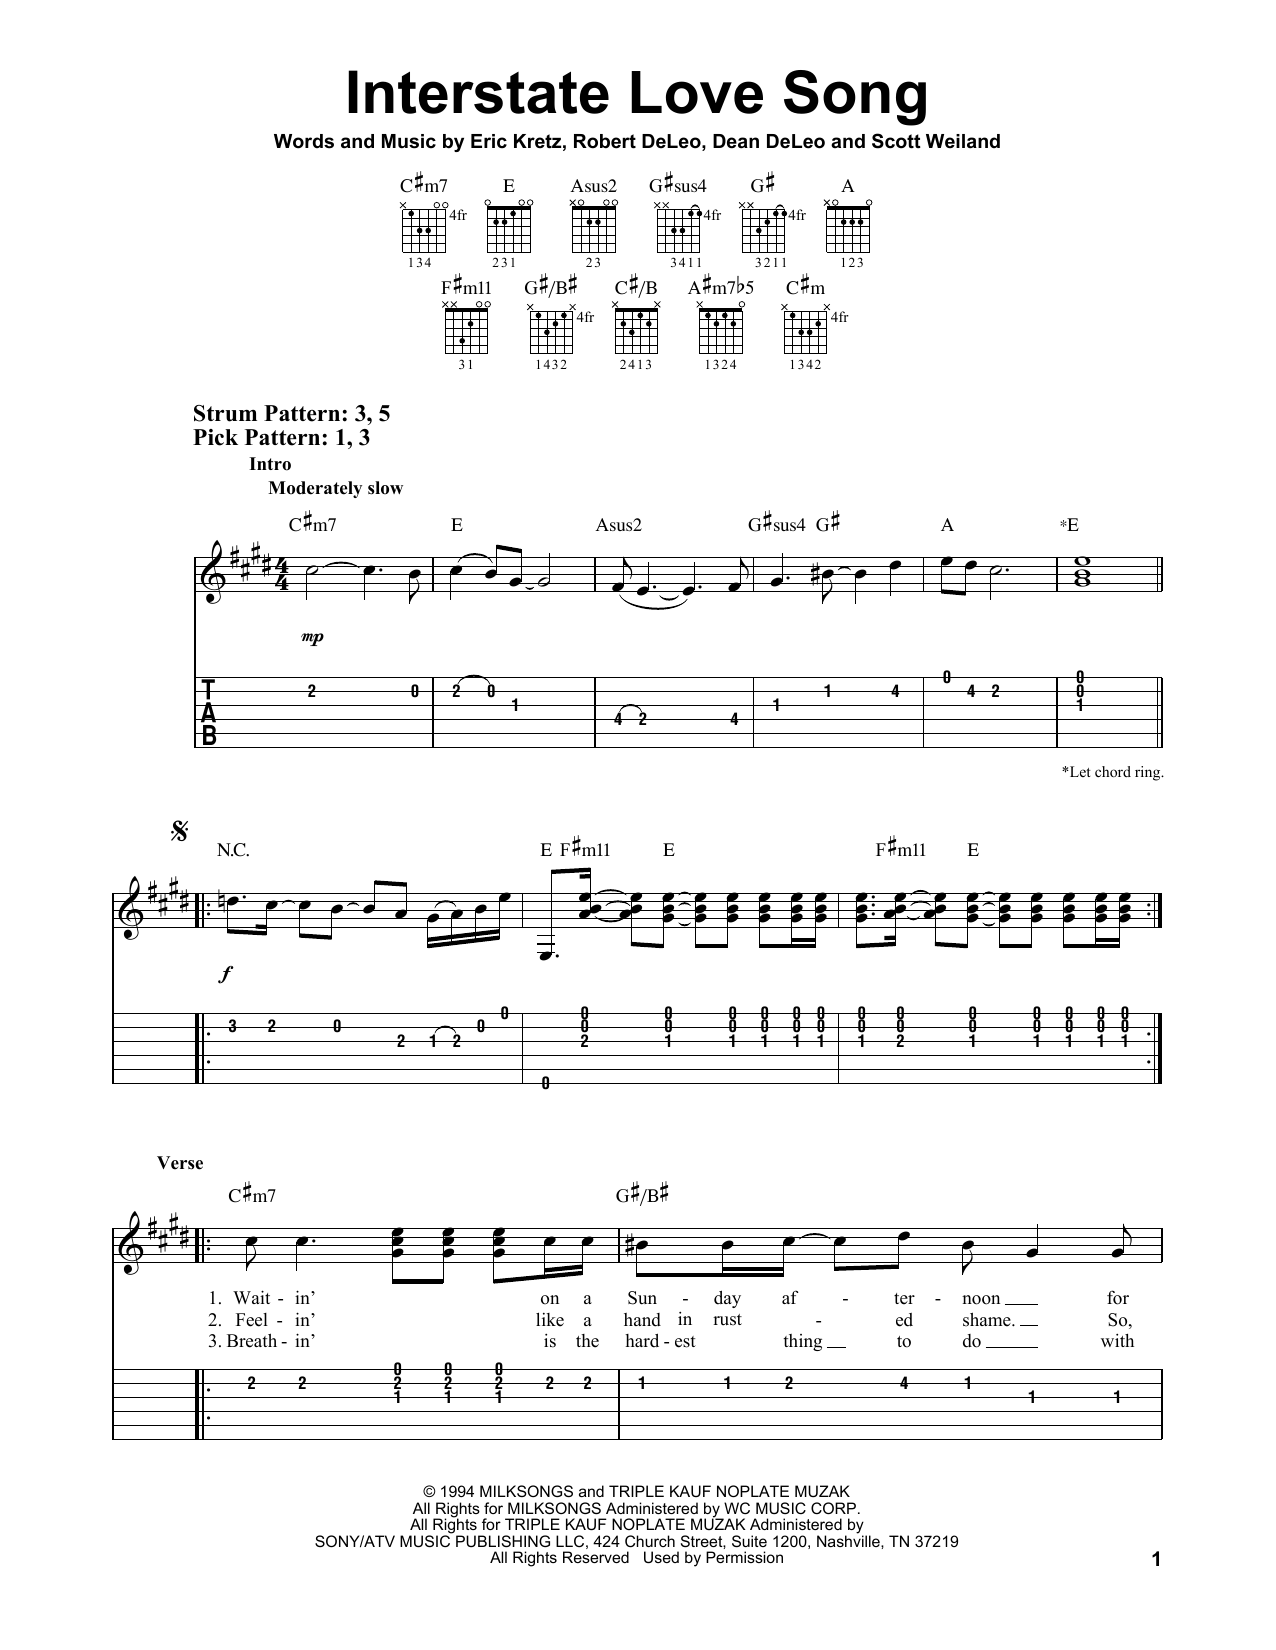 Easy Love Song Tabs